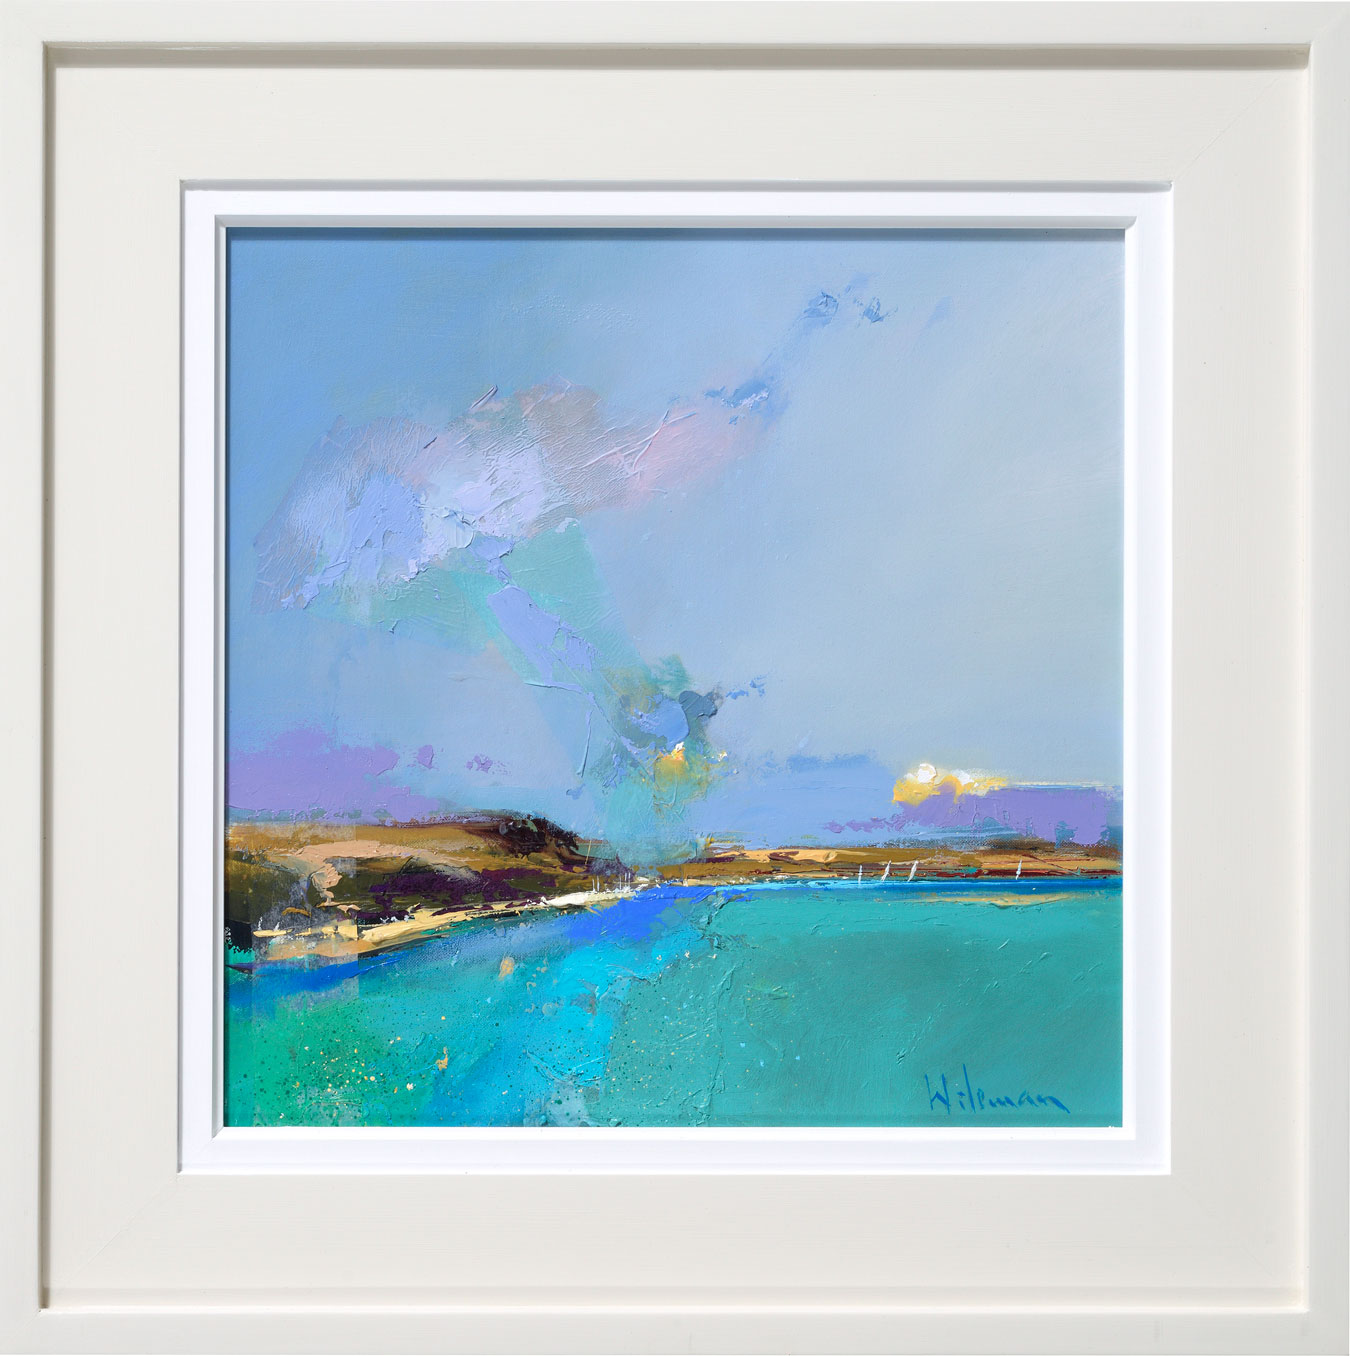 Towards Rock, on the Camel Estuary by  Peter Wileman PPROI RSMA FRSA